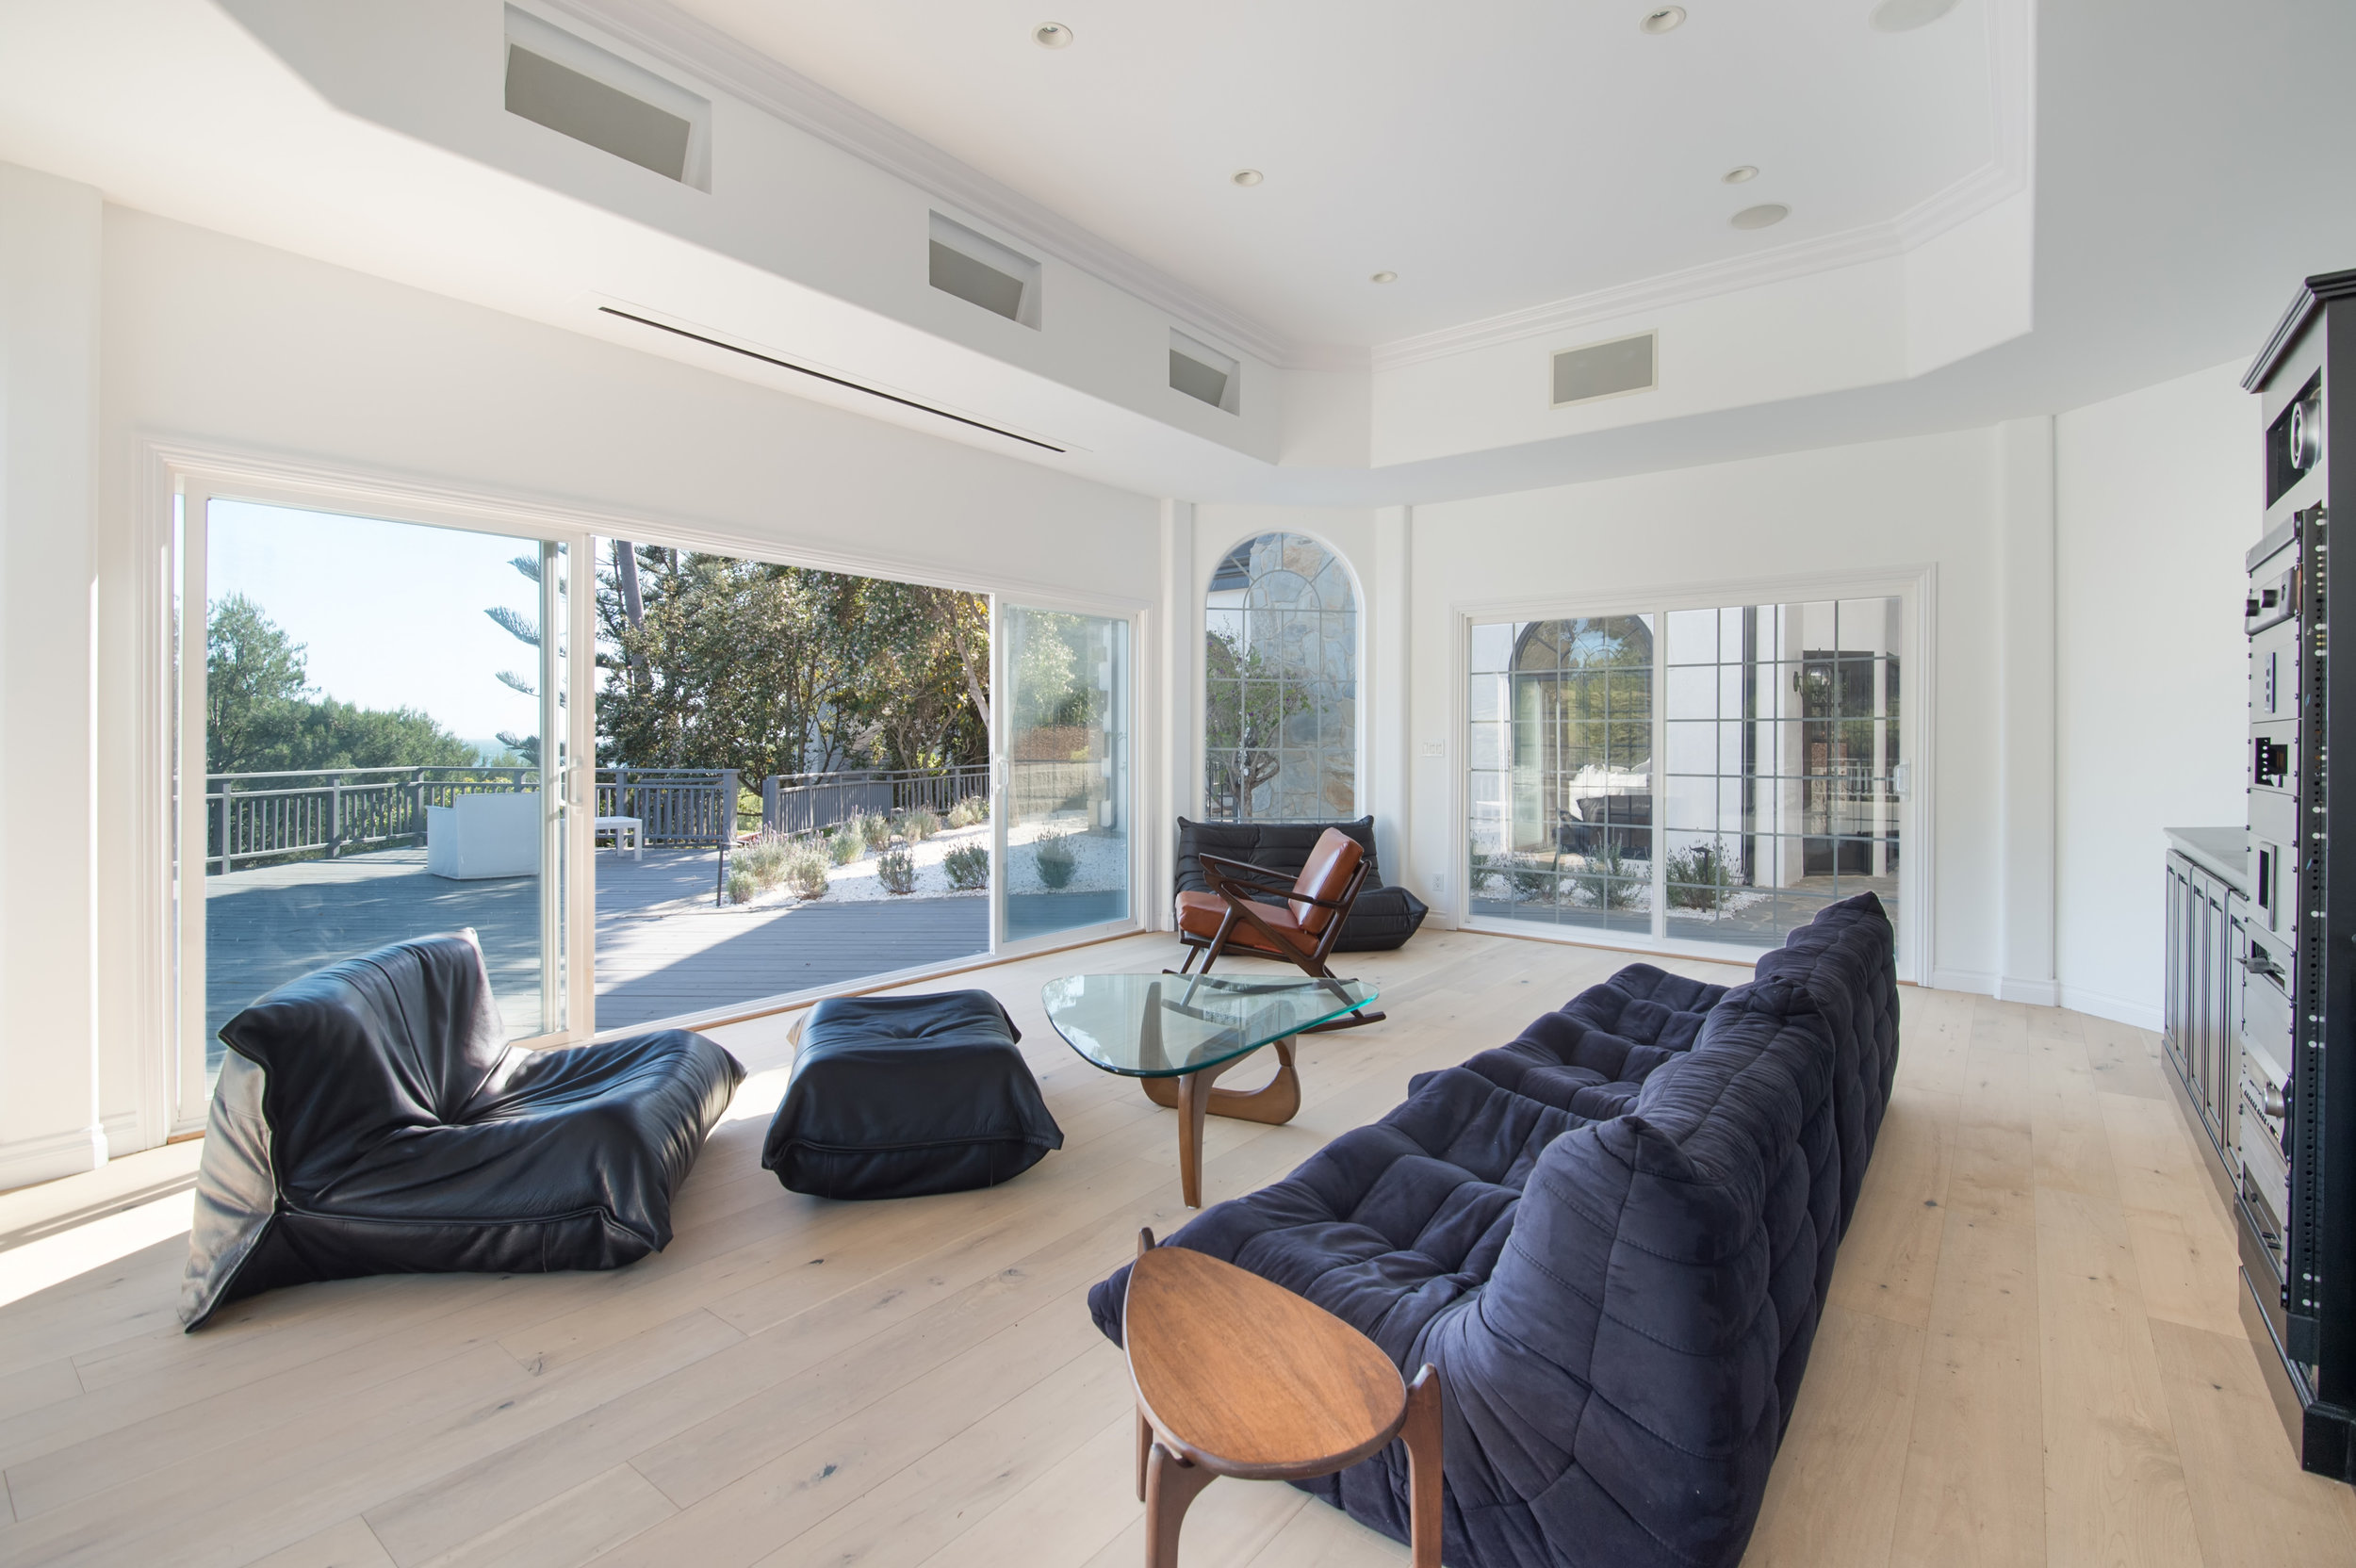 021 guest house 30340 Morning View Malibu For Sale The Malibu Life Team Luxury Real Estate.jpg